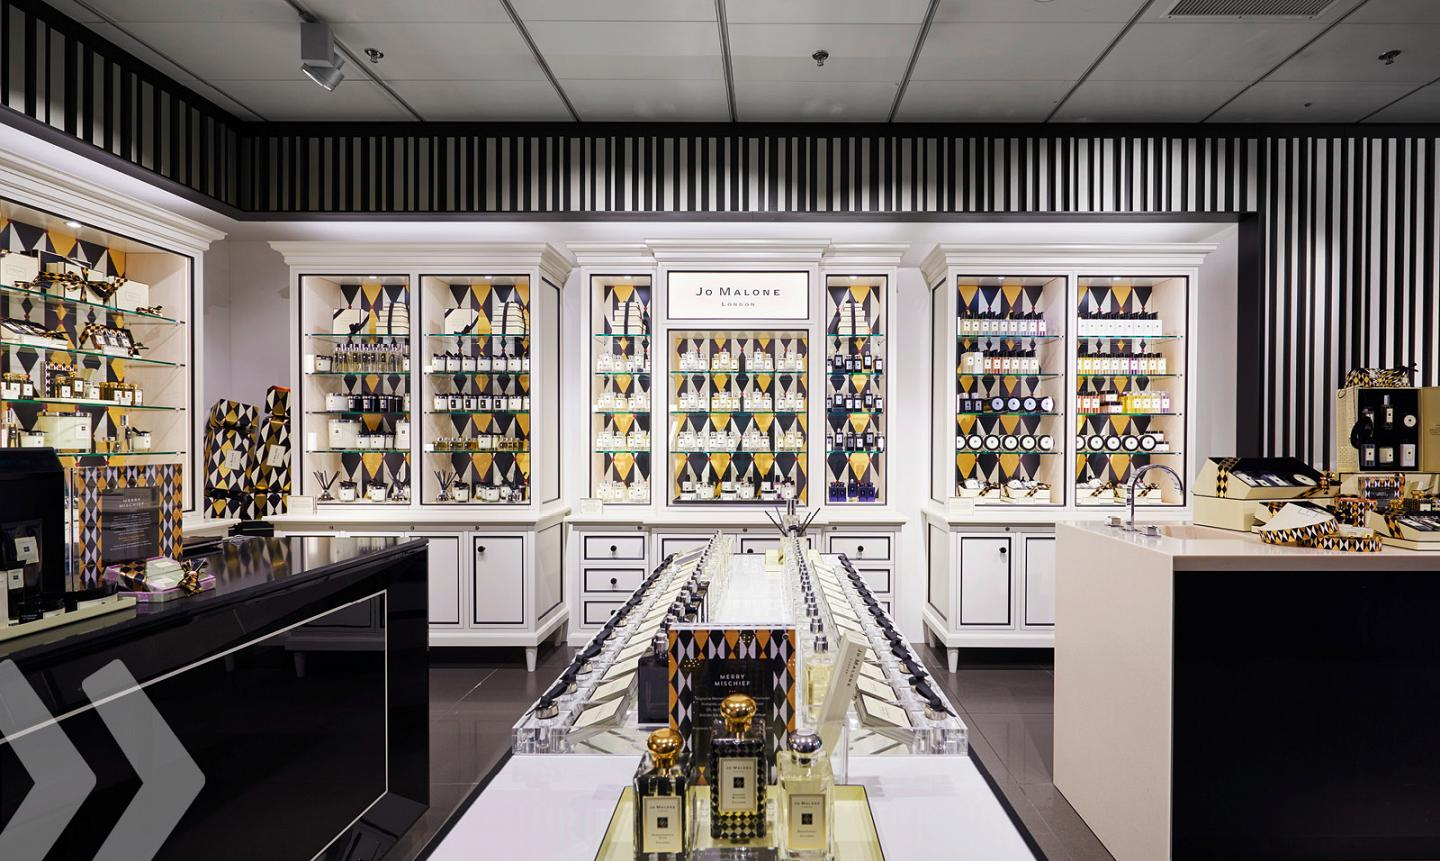 Jo Malone Shop in Shop made by ARNO 01